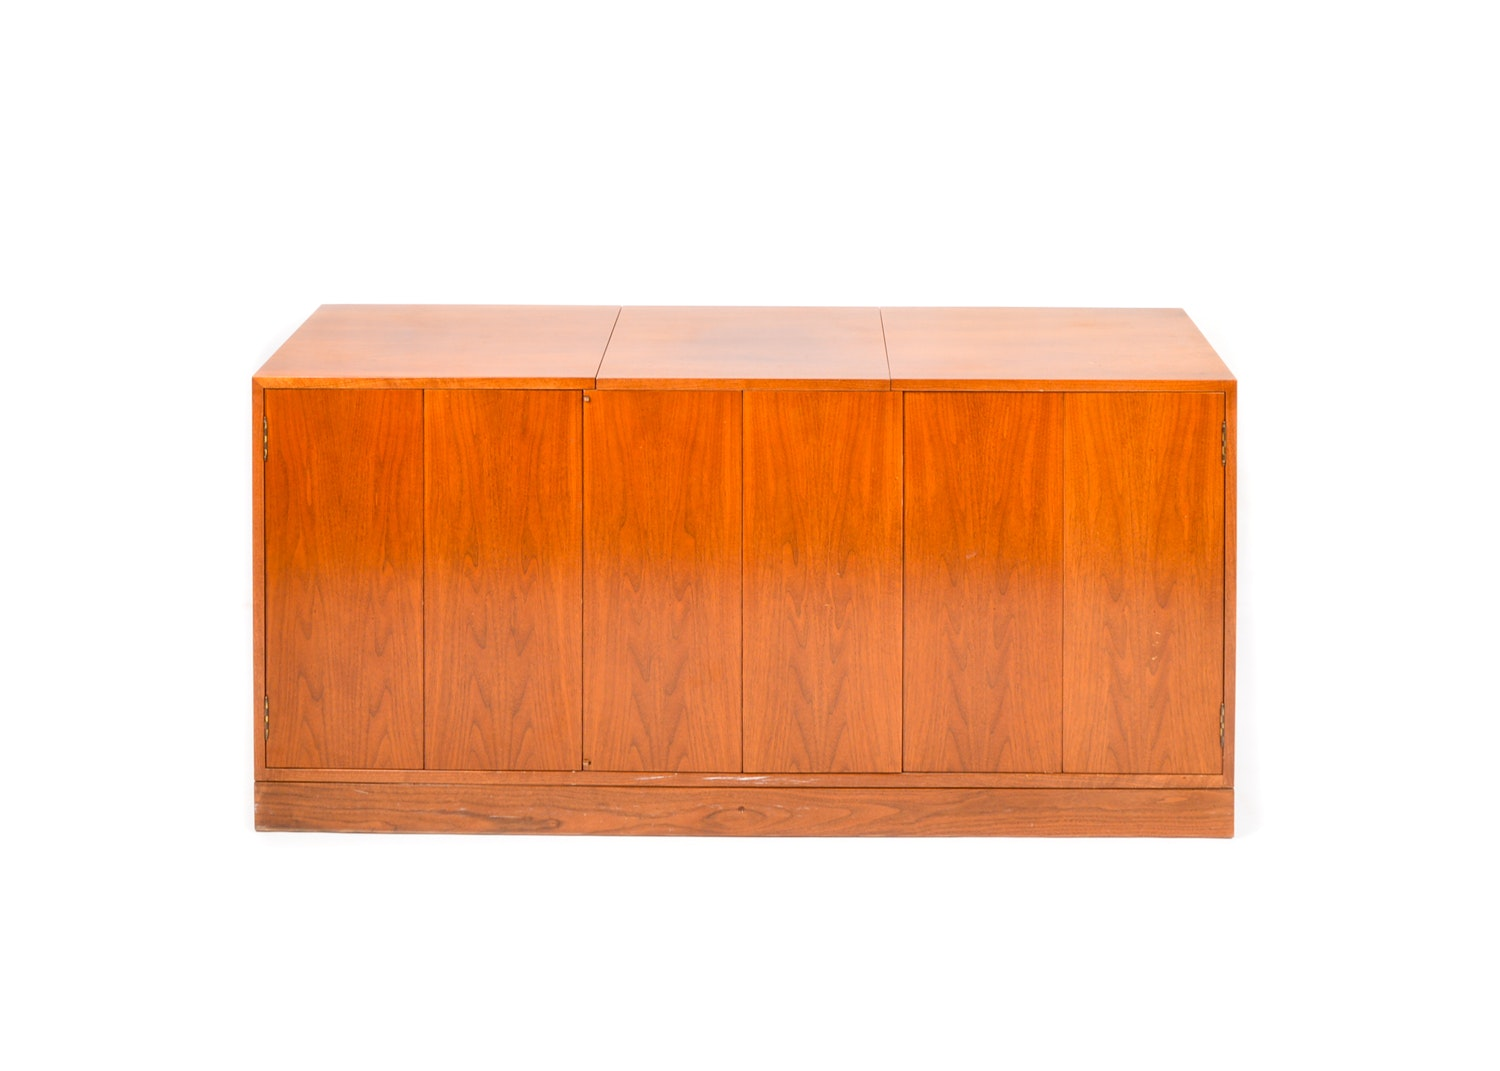 Danish Modern Style Teak Record and Stereo Cabinet